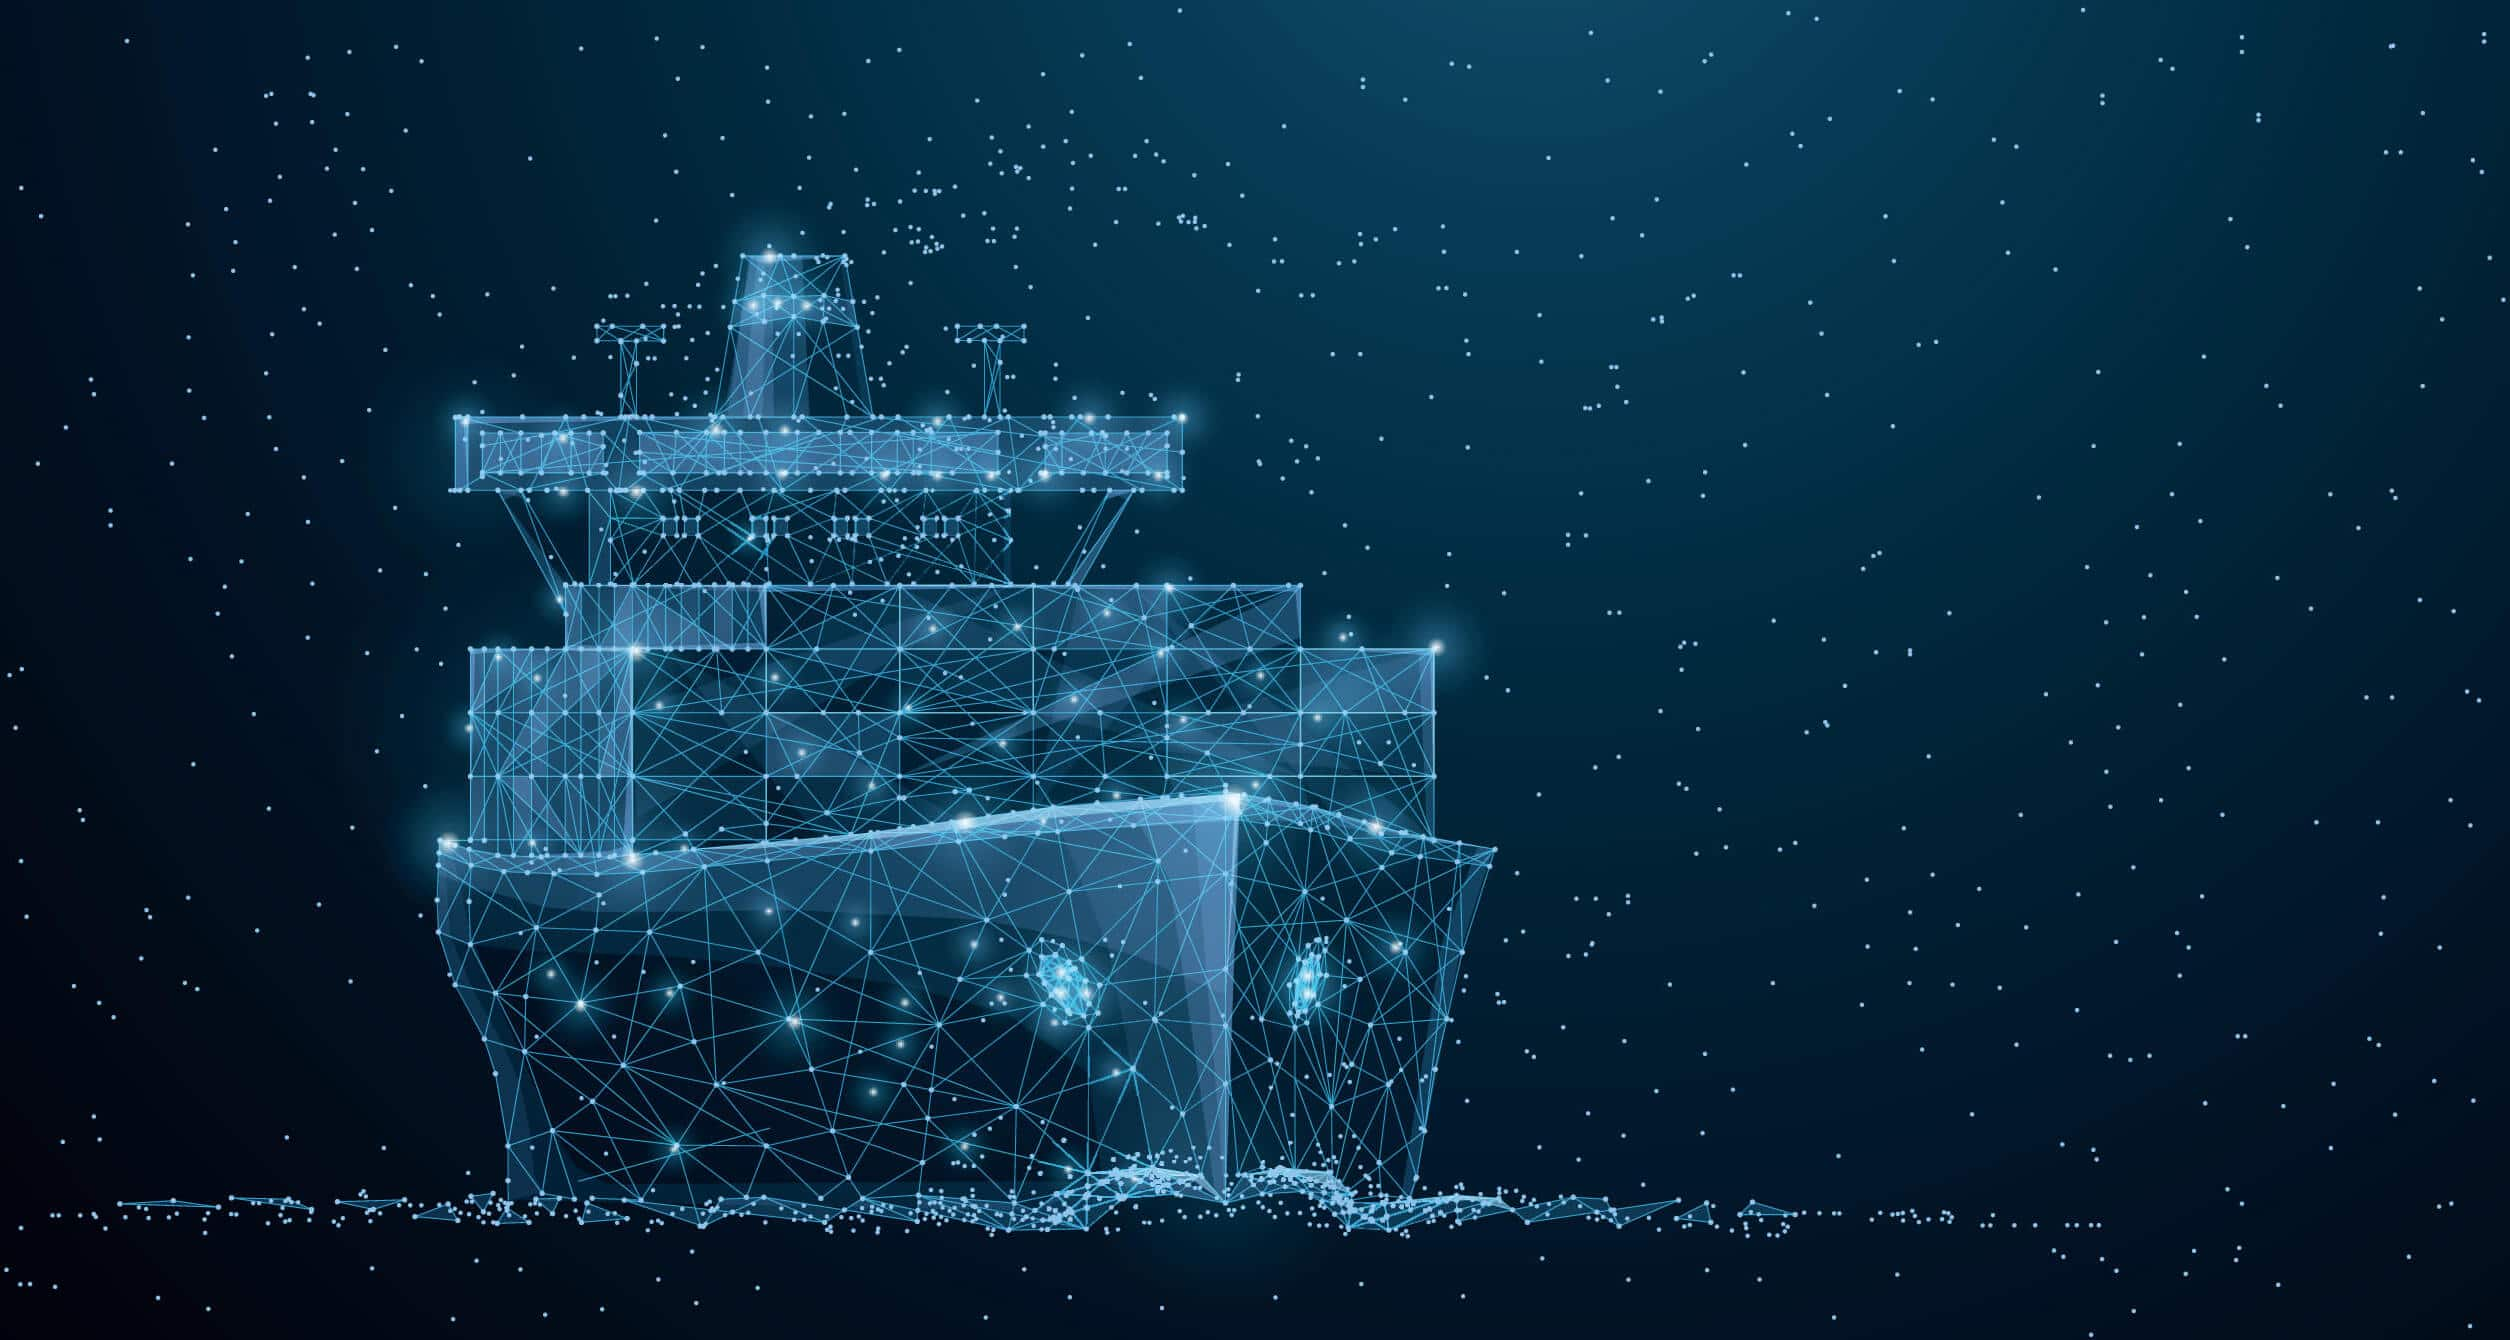 This week's top news in logistics: Two cyber-attacks hit the maritime industry in the same week, container lines max out capacity to meet the surge in U.S. demand, India's container shortage to continue through Q4, over 19,000 Amazon associates test positive for COVID-19 and Walmart, Target announce plans to rival Prime Day this October.